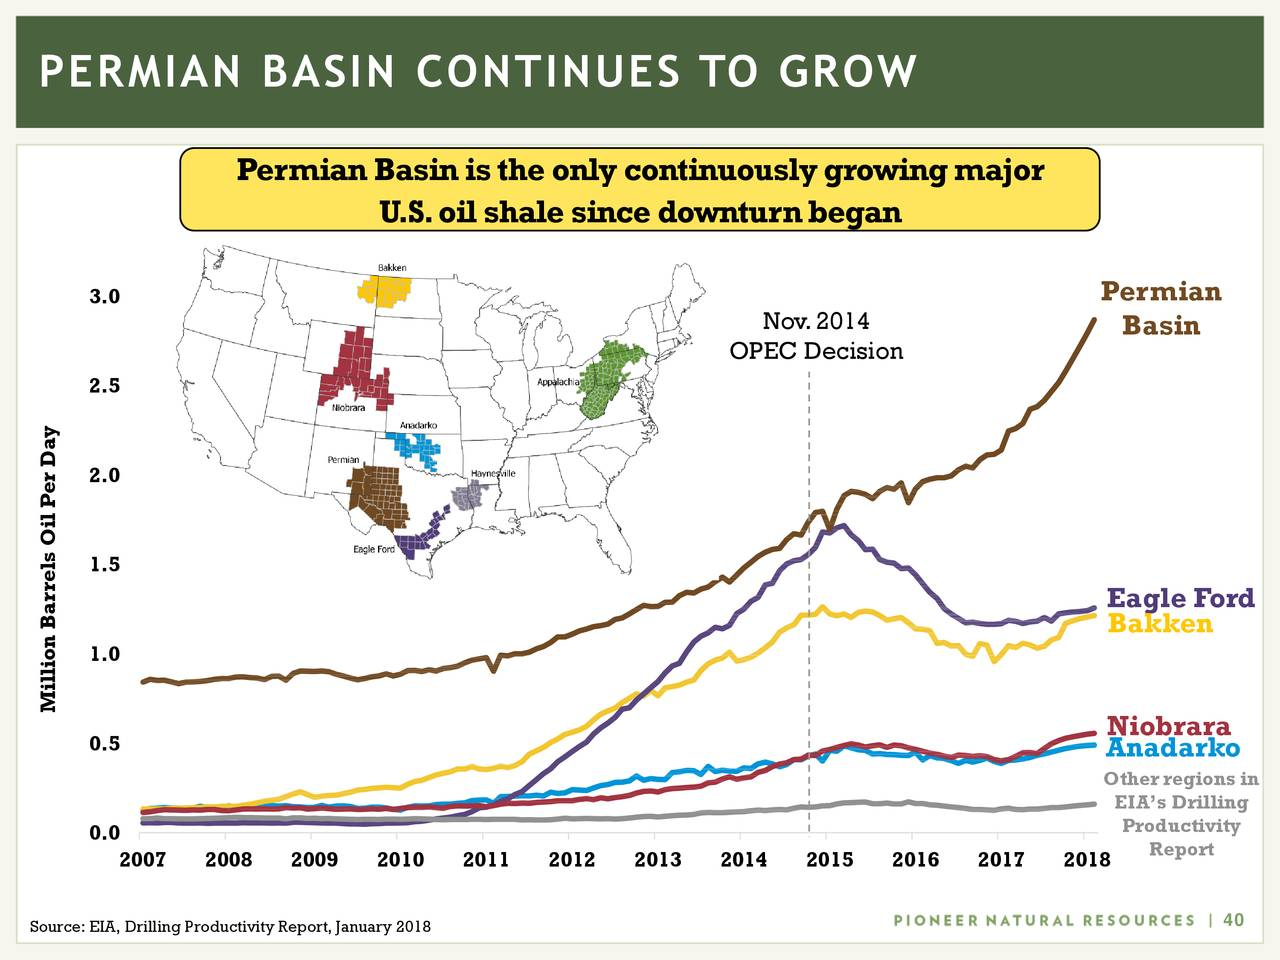 Investment and pioneer petroleum